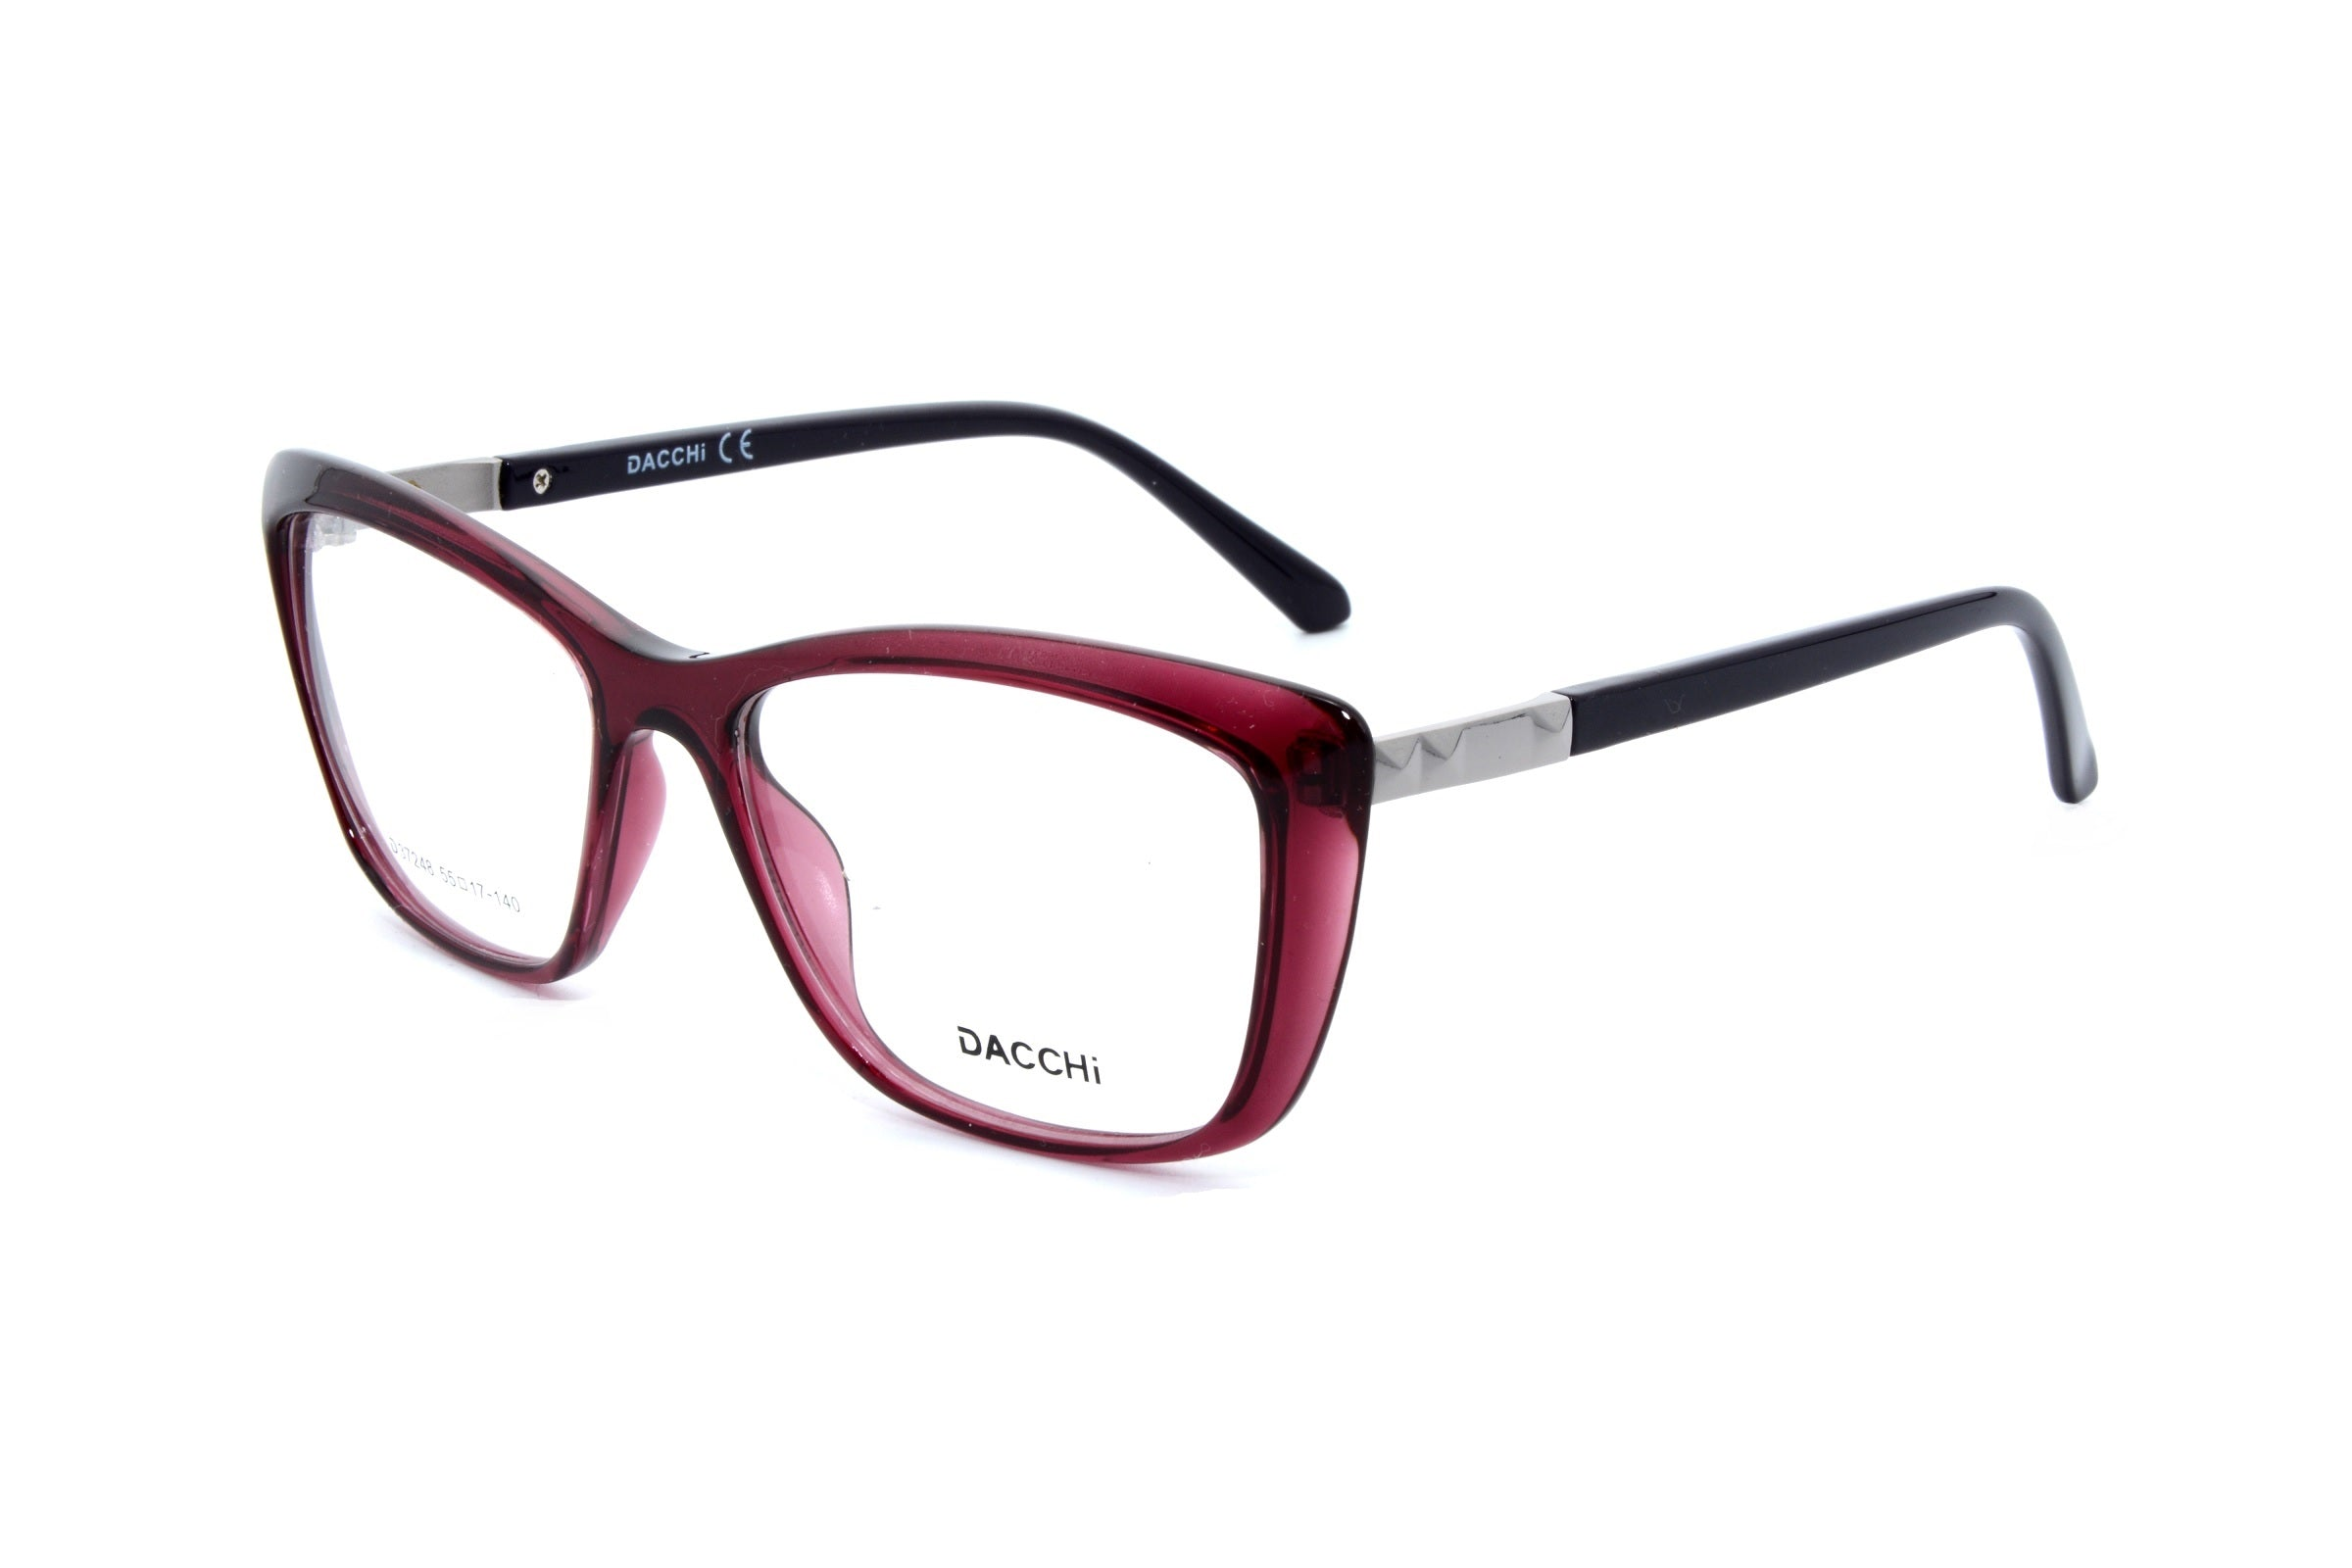 Dacchi eyewear 37248, C4 - Optics Trading